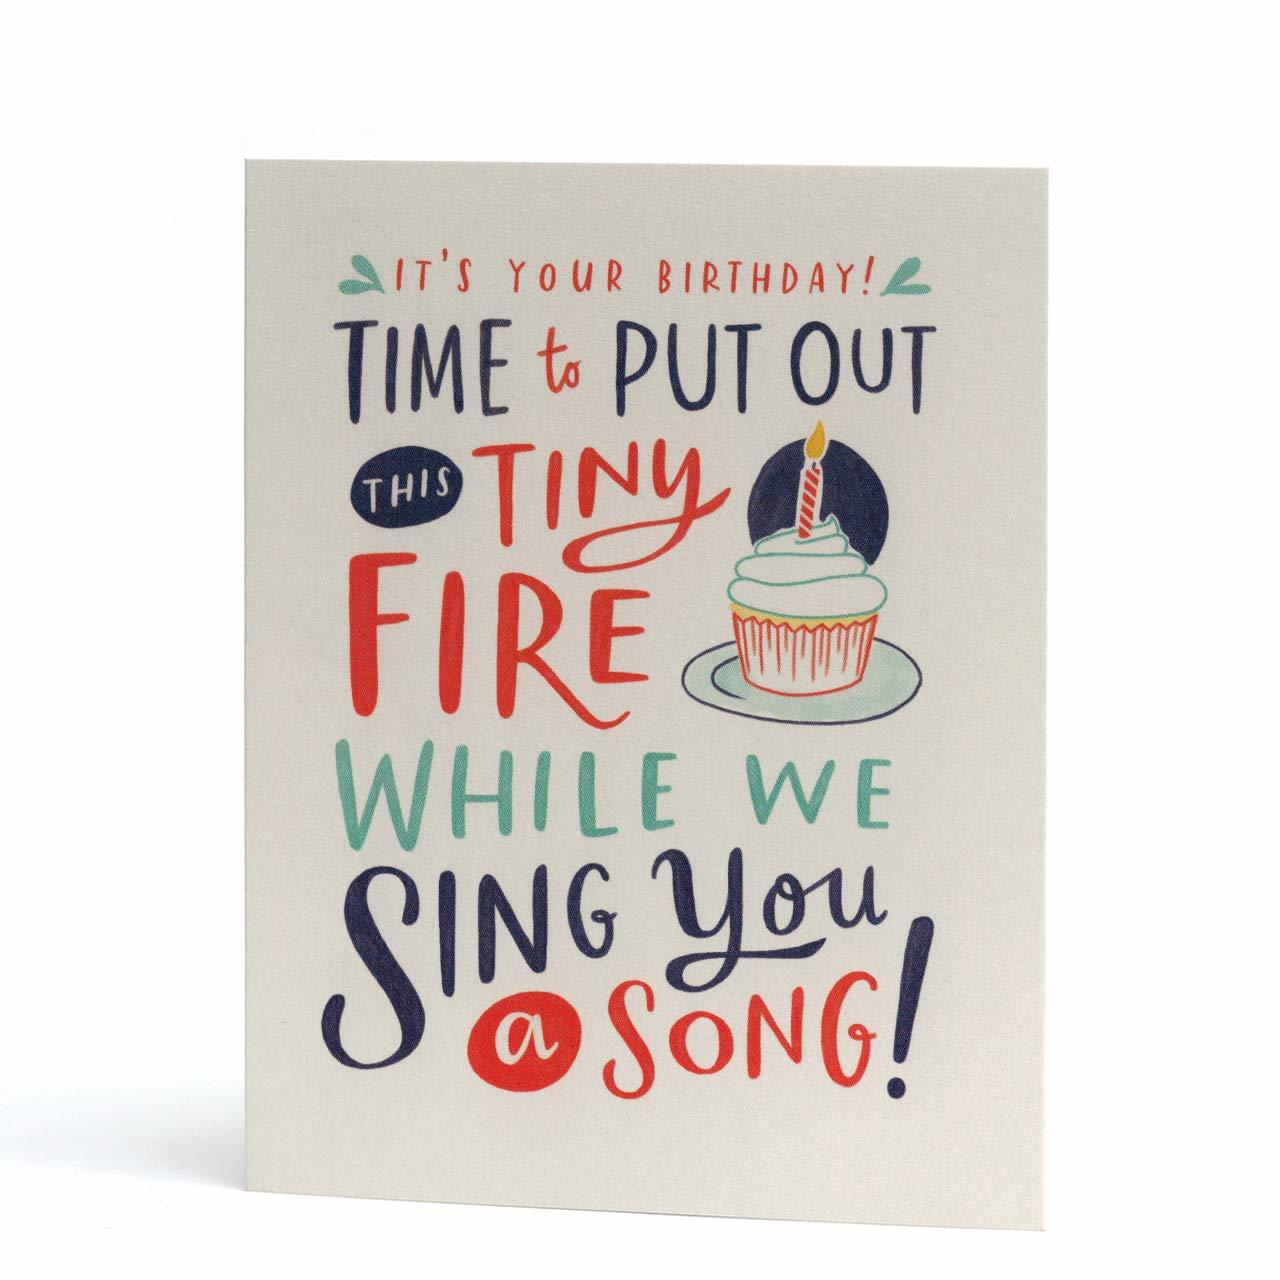 Put Out This Tiny Fire Birthday Greeting Card